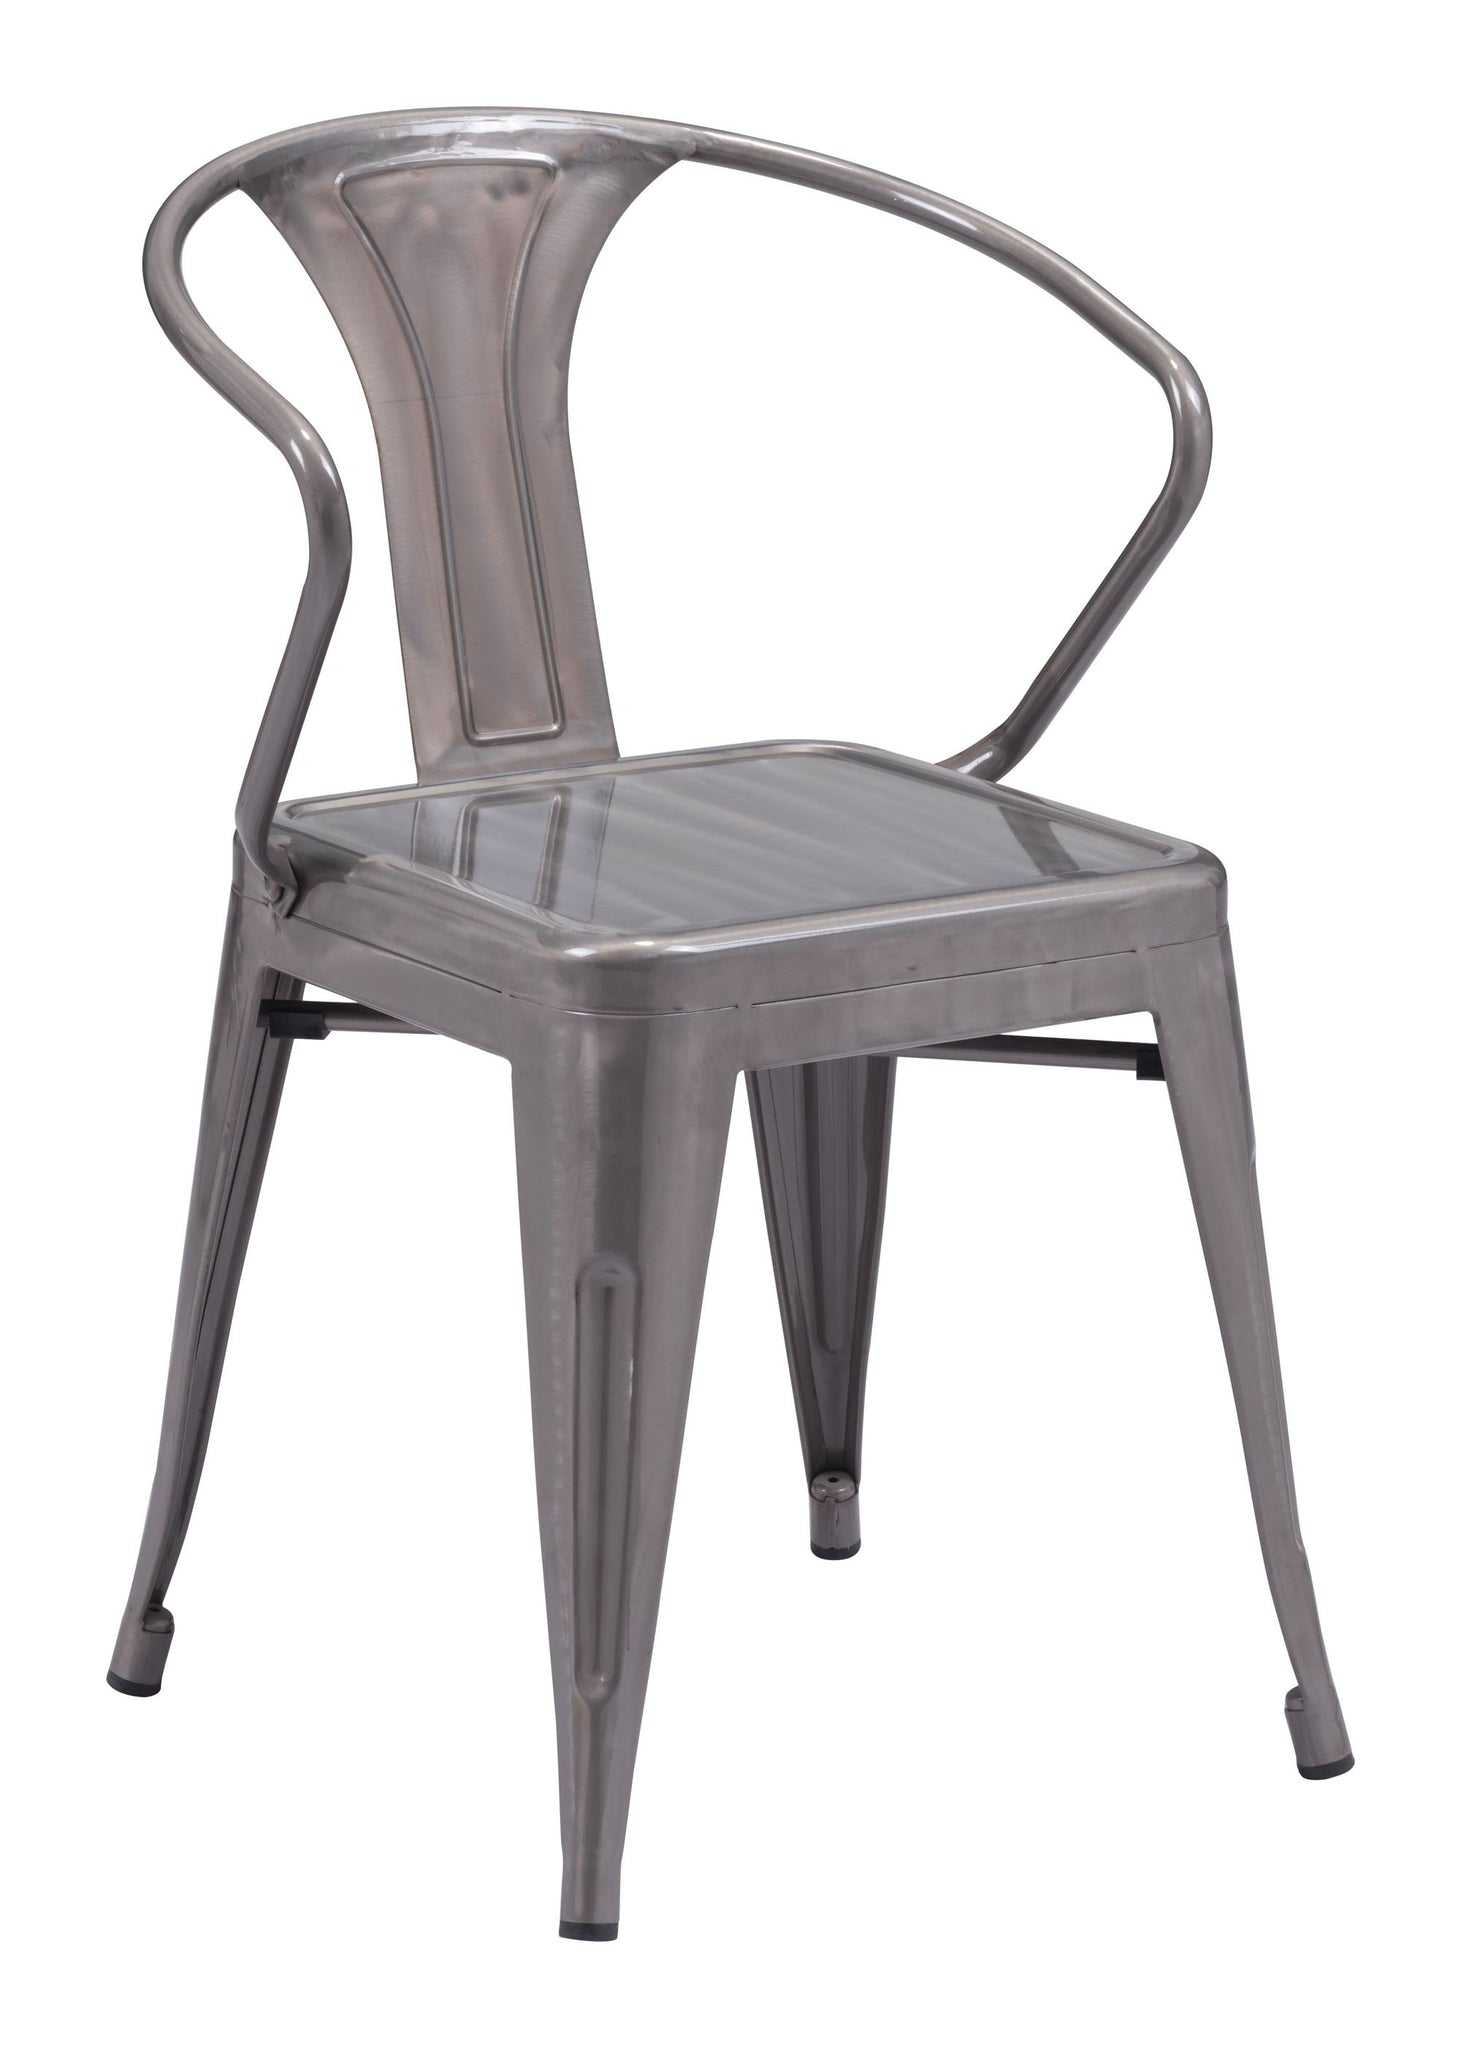 Picture of Helix Dining Chair Gunmetal